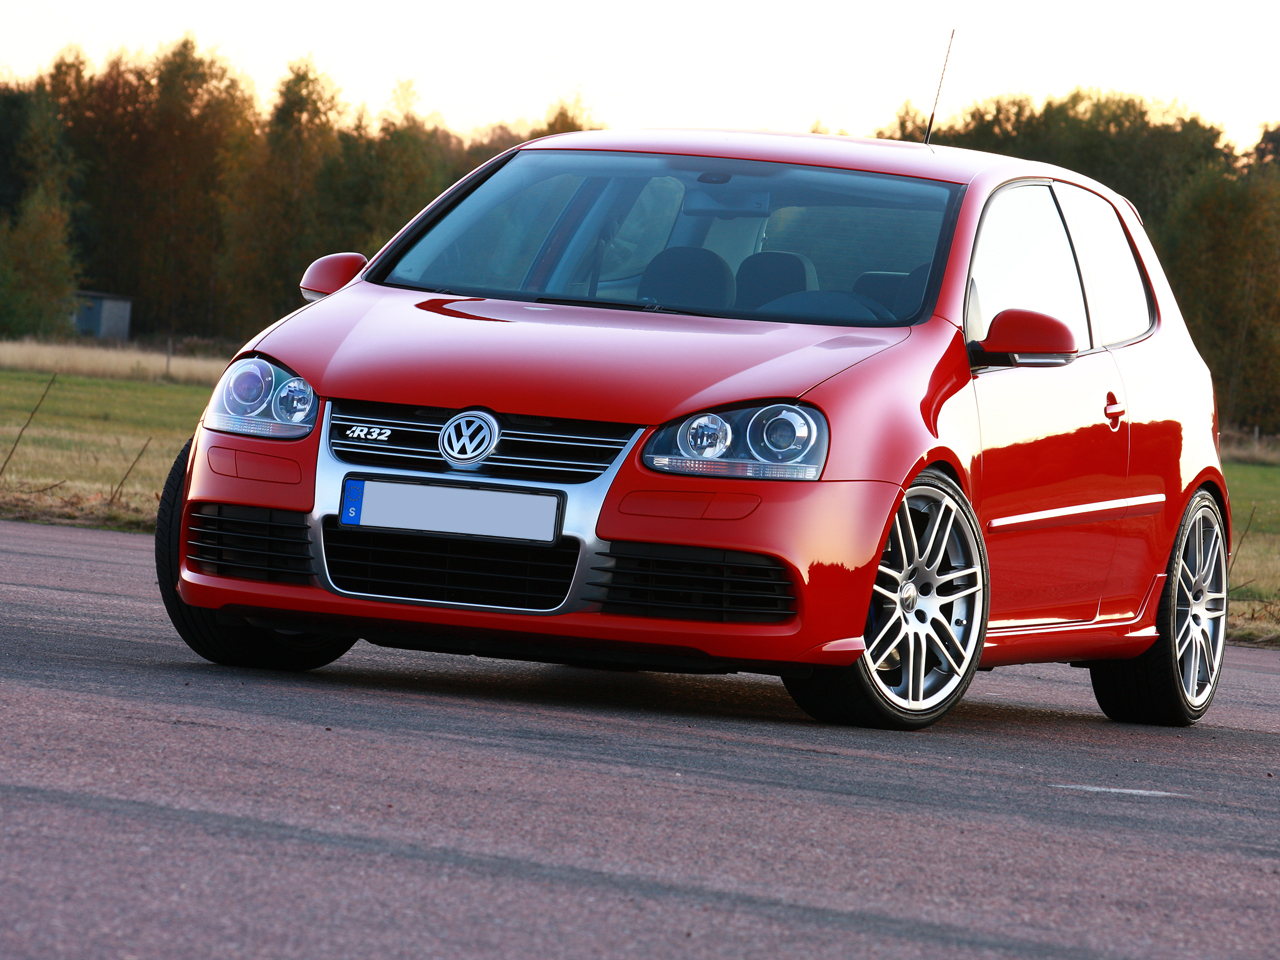 vw golf r32 a photo on flickriver. Black Bedroom Furniture Sets. Home Design Ideas